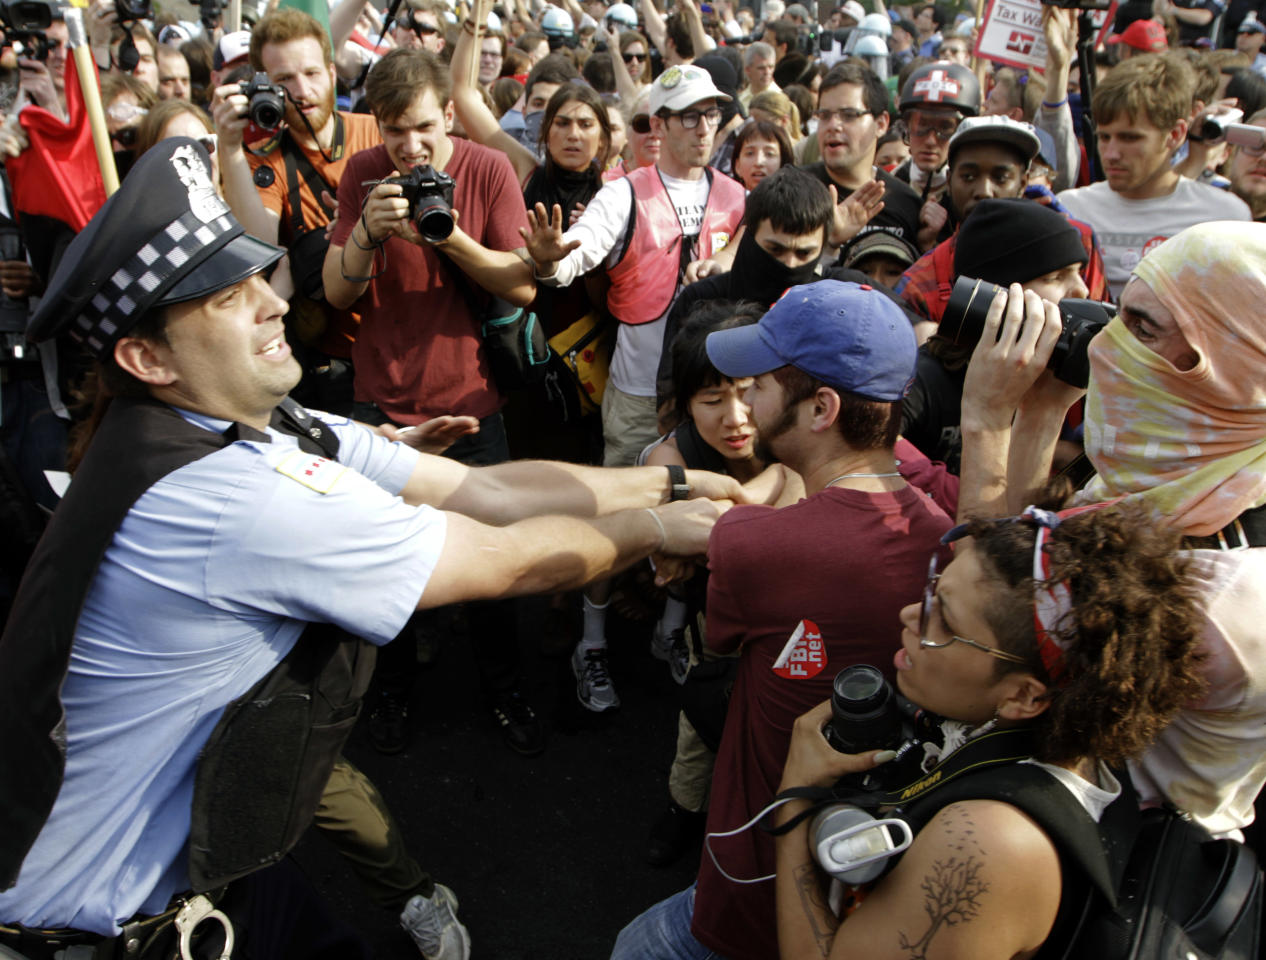 Demonstrators make a futile attempt to stop a Chicago police officer from detaining a protester during this weekend's NATO summit in Chicago Sunday, May 20, 2012 in Chicago. (AP Photo/Seth Perlman)